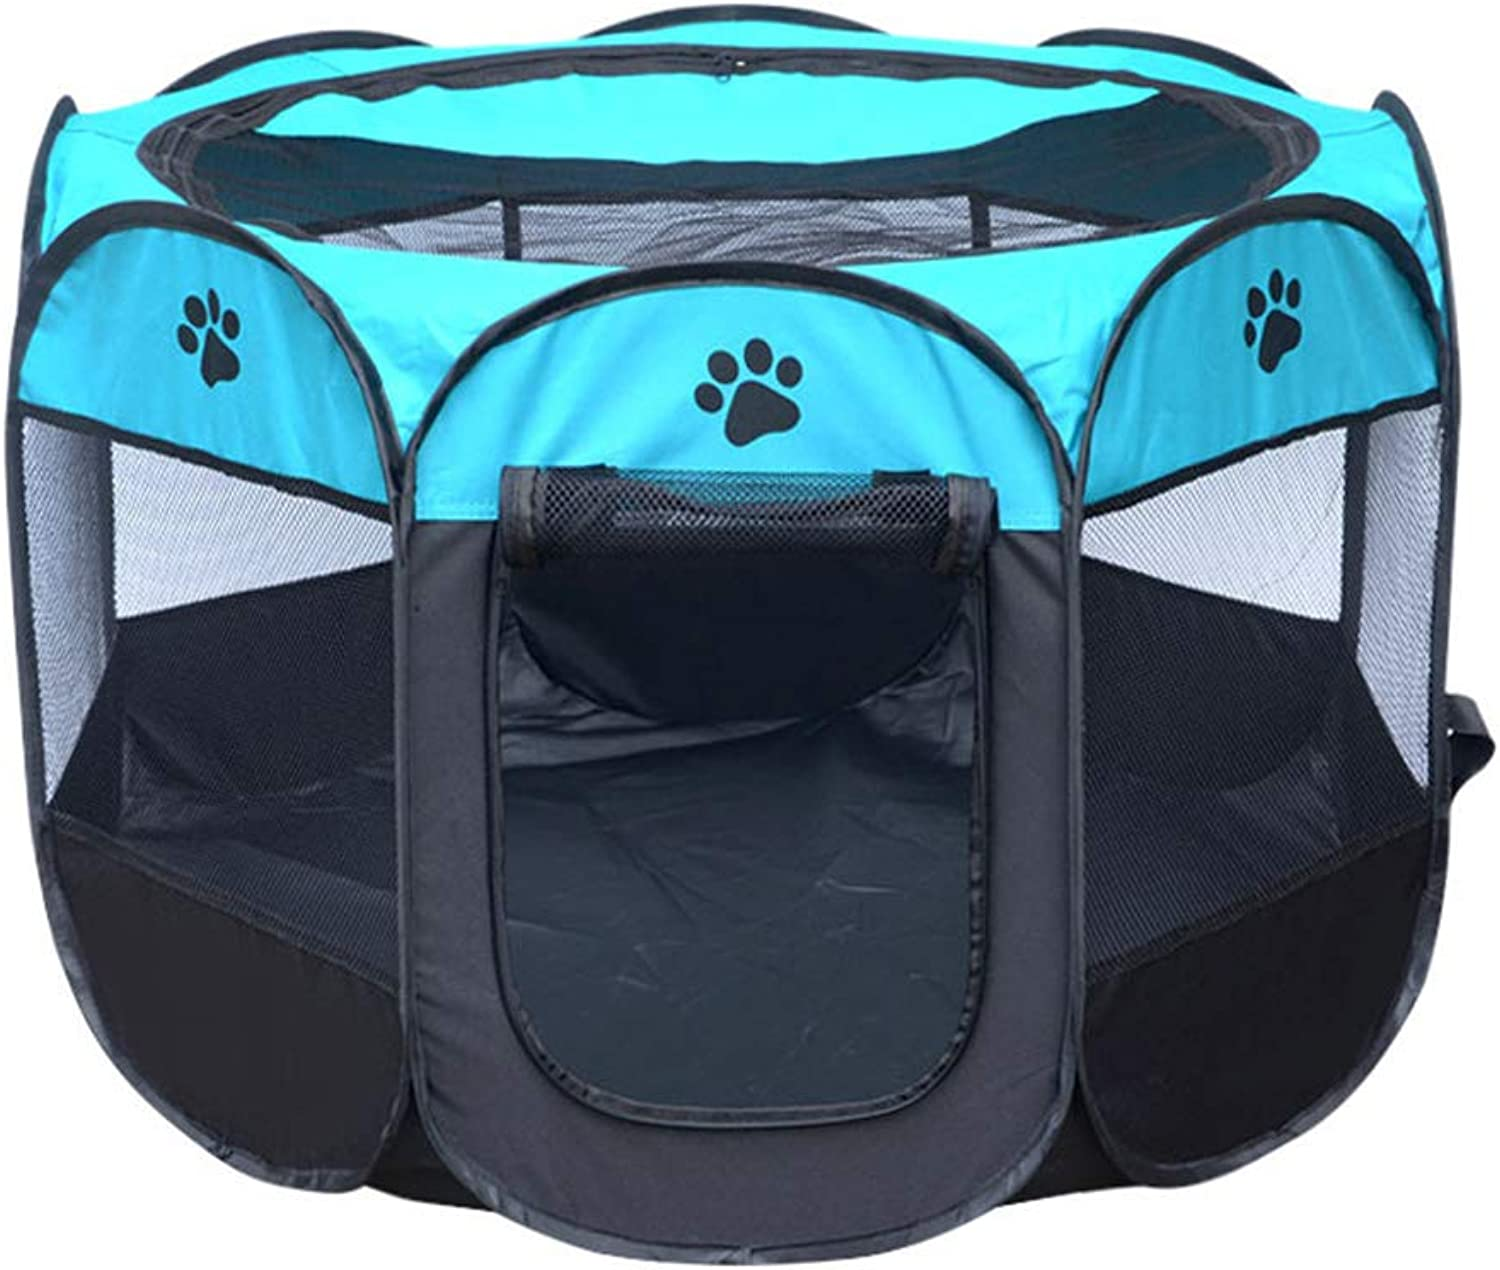 8 Panel Pet Portable Cloth Fence Travel Kennel Tent Washable Fold Oxford Cloth Waterproof Resistant To Catch Dog Tent